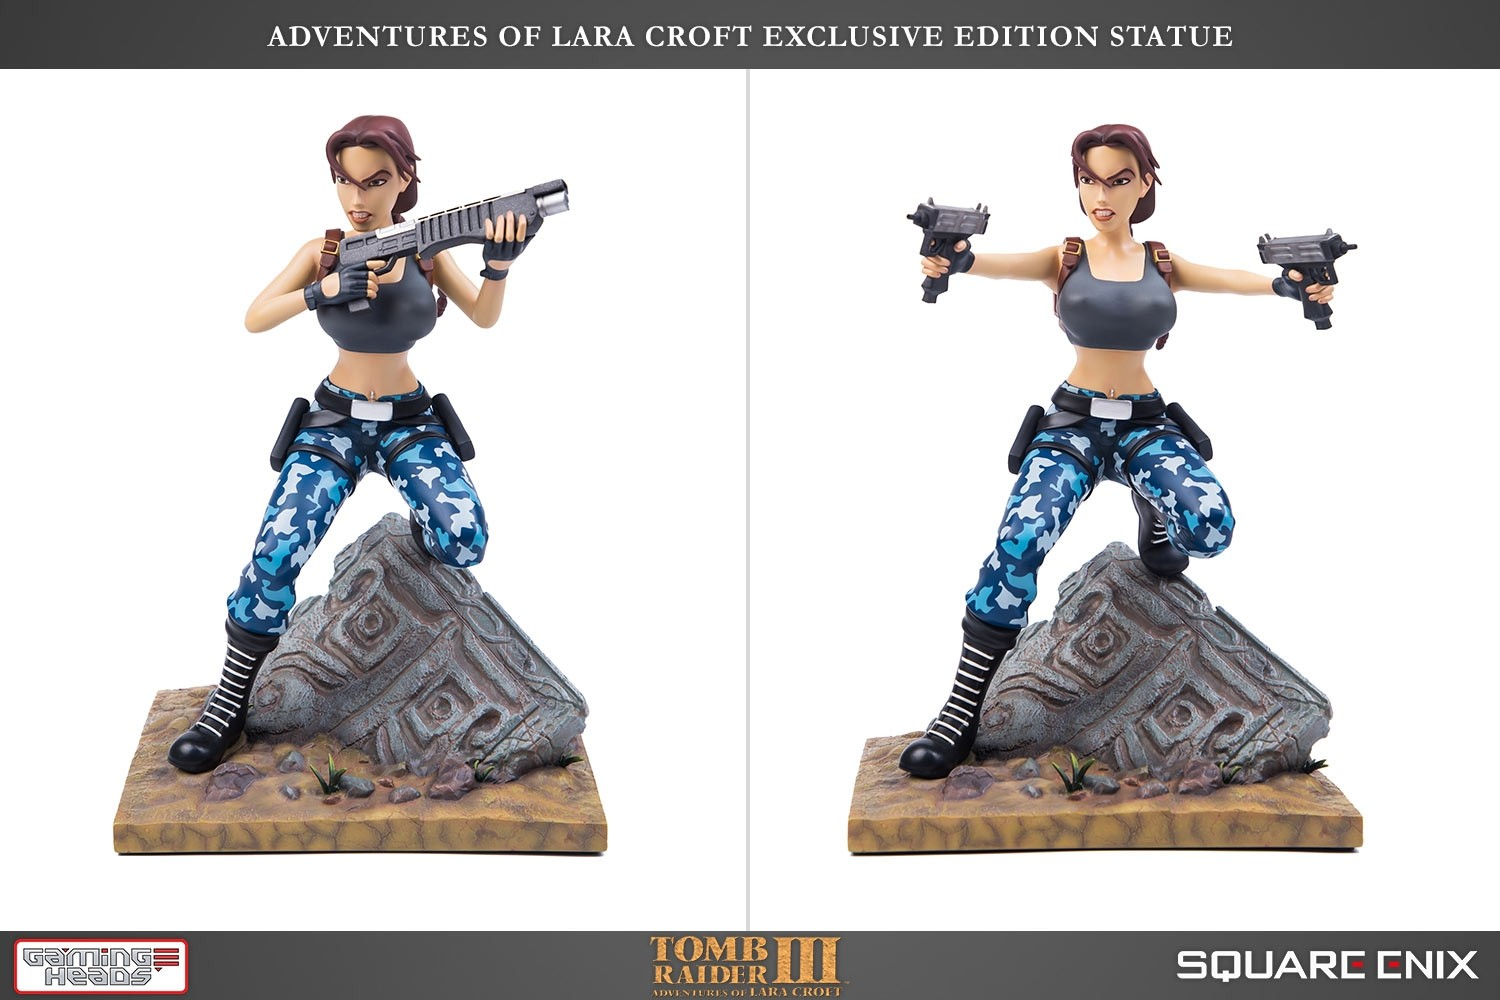 Statuette Gaming Heads Tomb Raider III : Adventures of Lara Croft